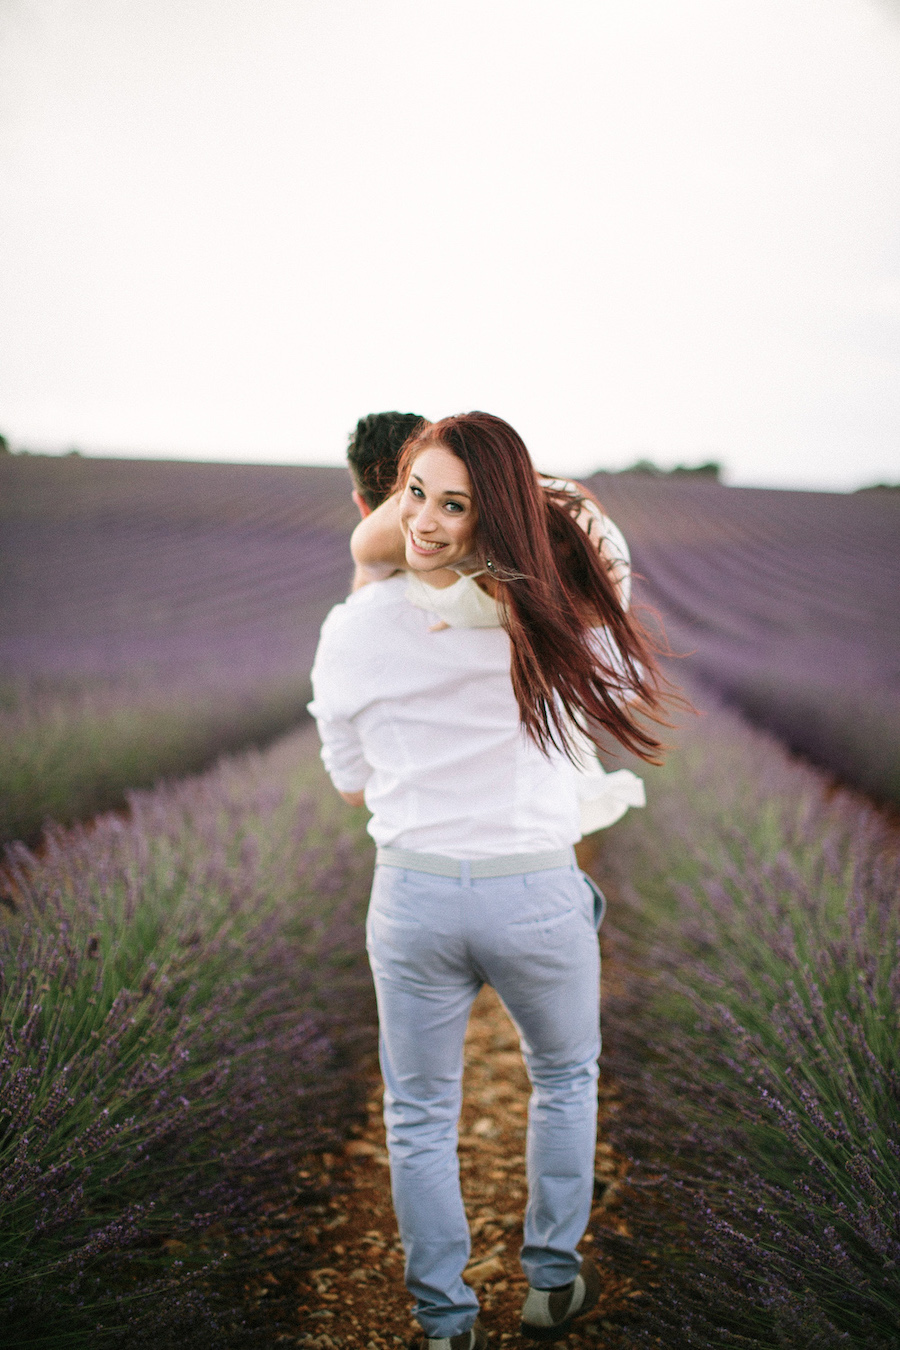 saya-photography-pre-wedding-provence-lavander-field-26.jpg